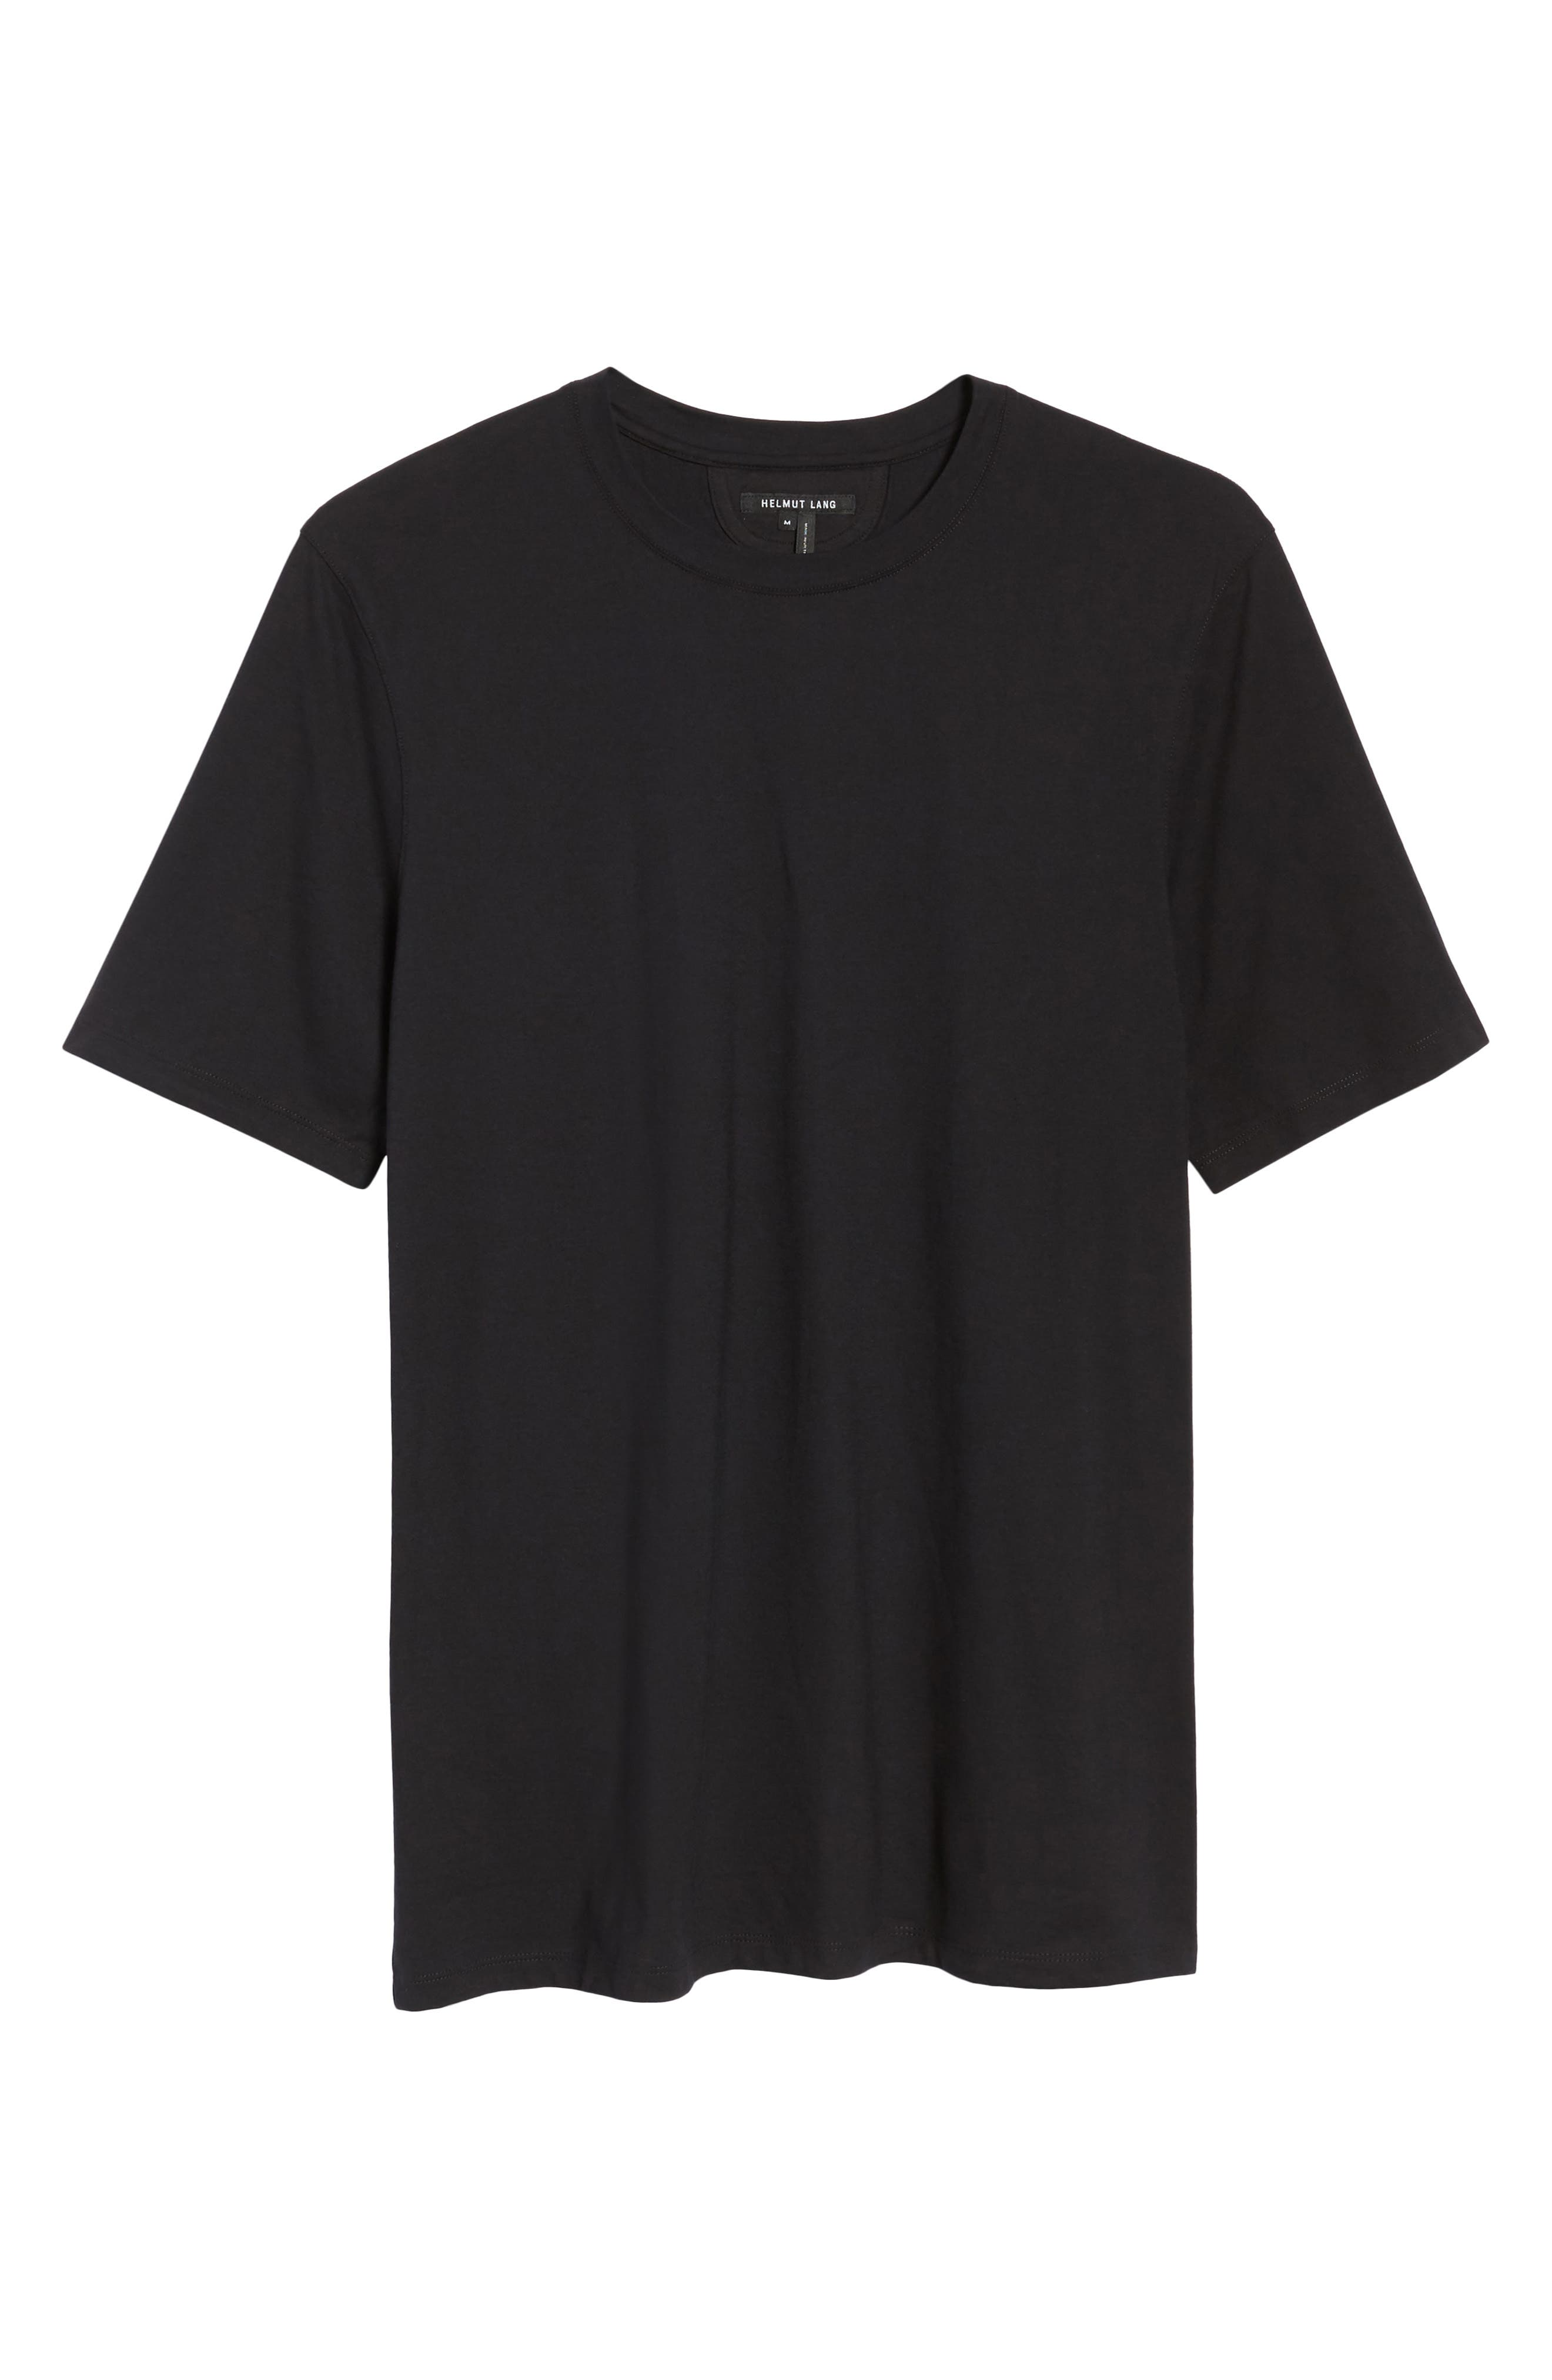 Heritage T-Shirt,                         Main,                         color, Black